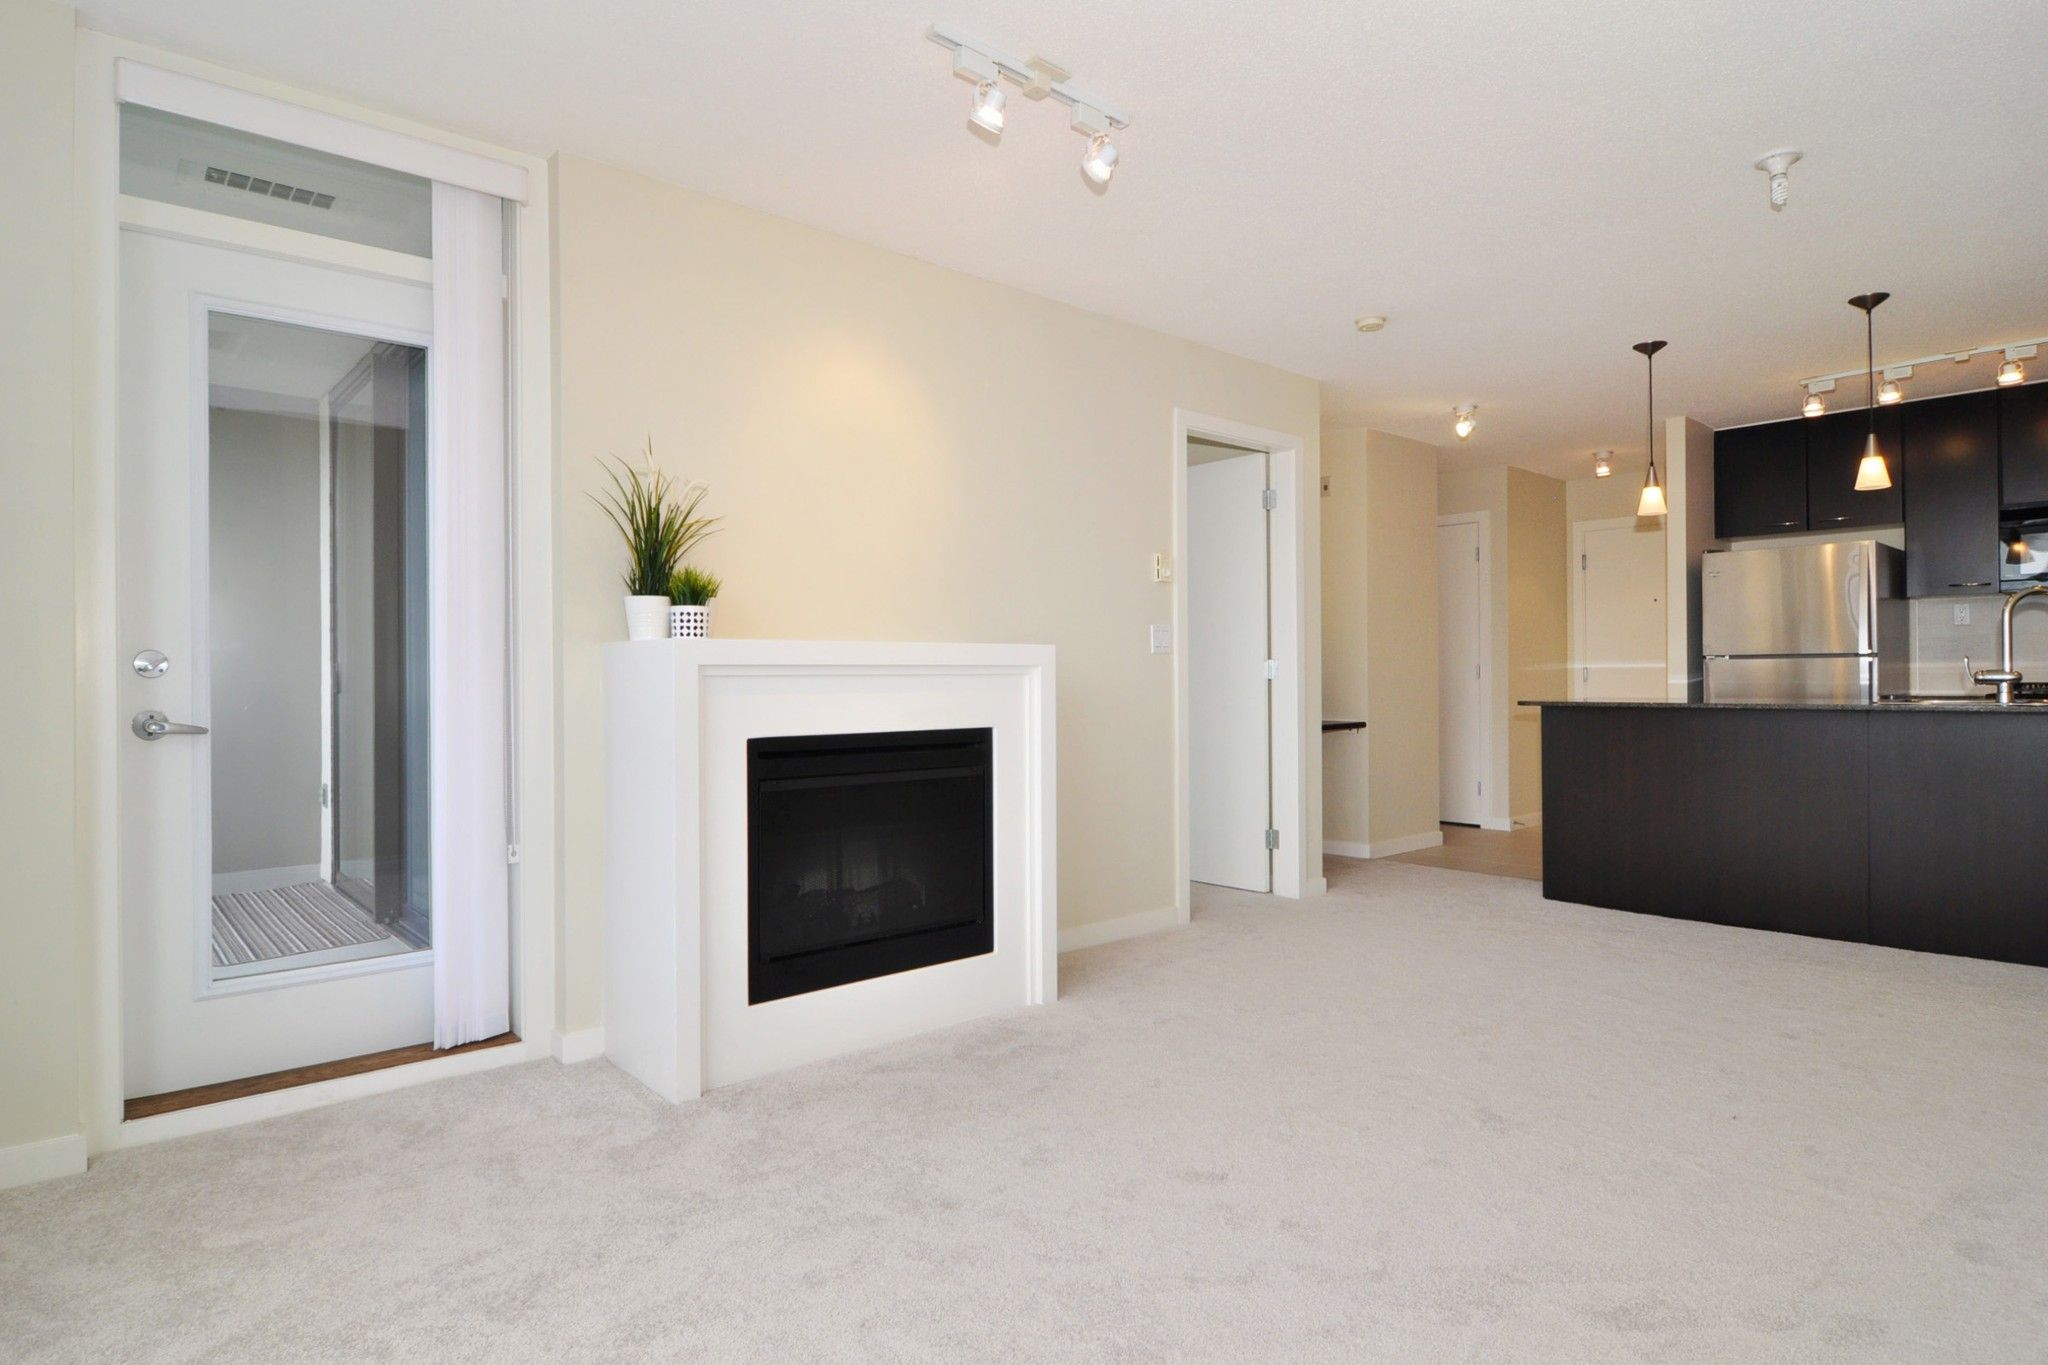 """Photo 4: Photos: 312 7138 COLLIER Street in Burnaby: Highgate Condo for sale in """"STANDFORD HOUSE"""" (Burnaby South)  : MLS®# R2224760"""